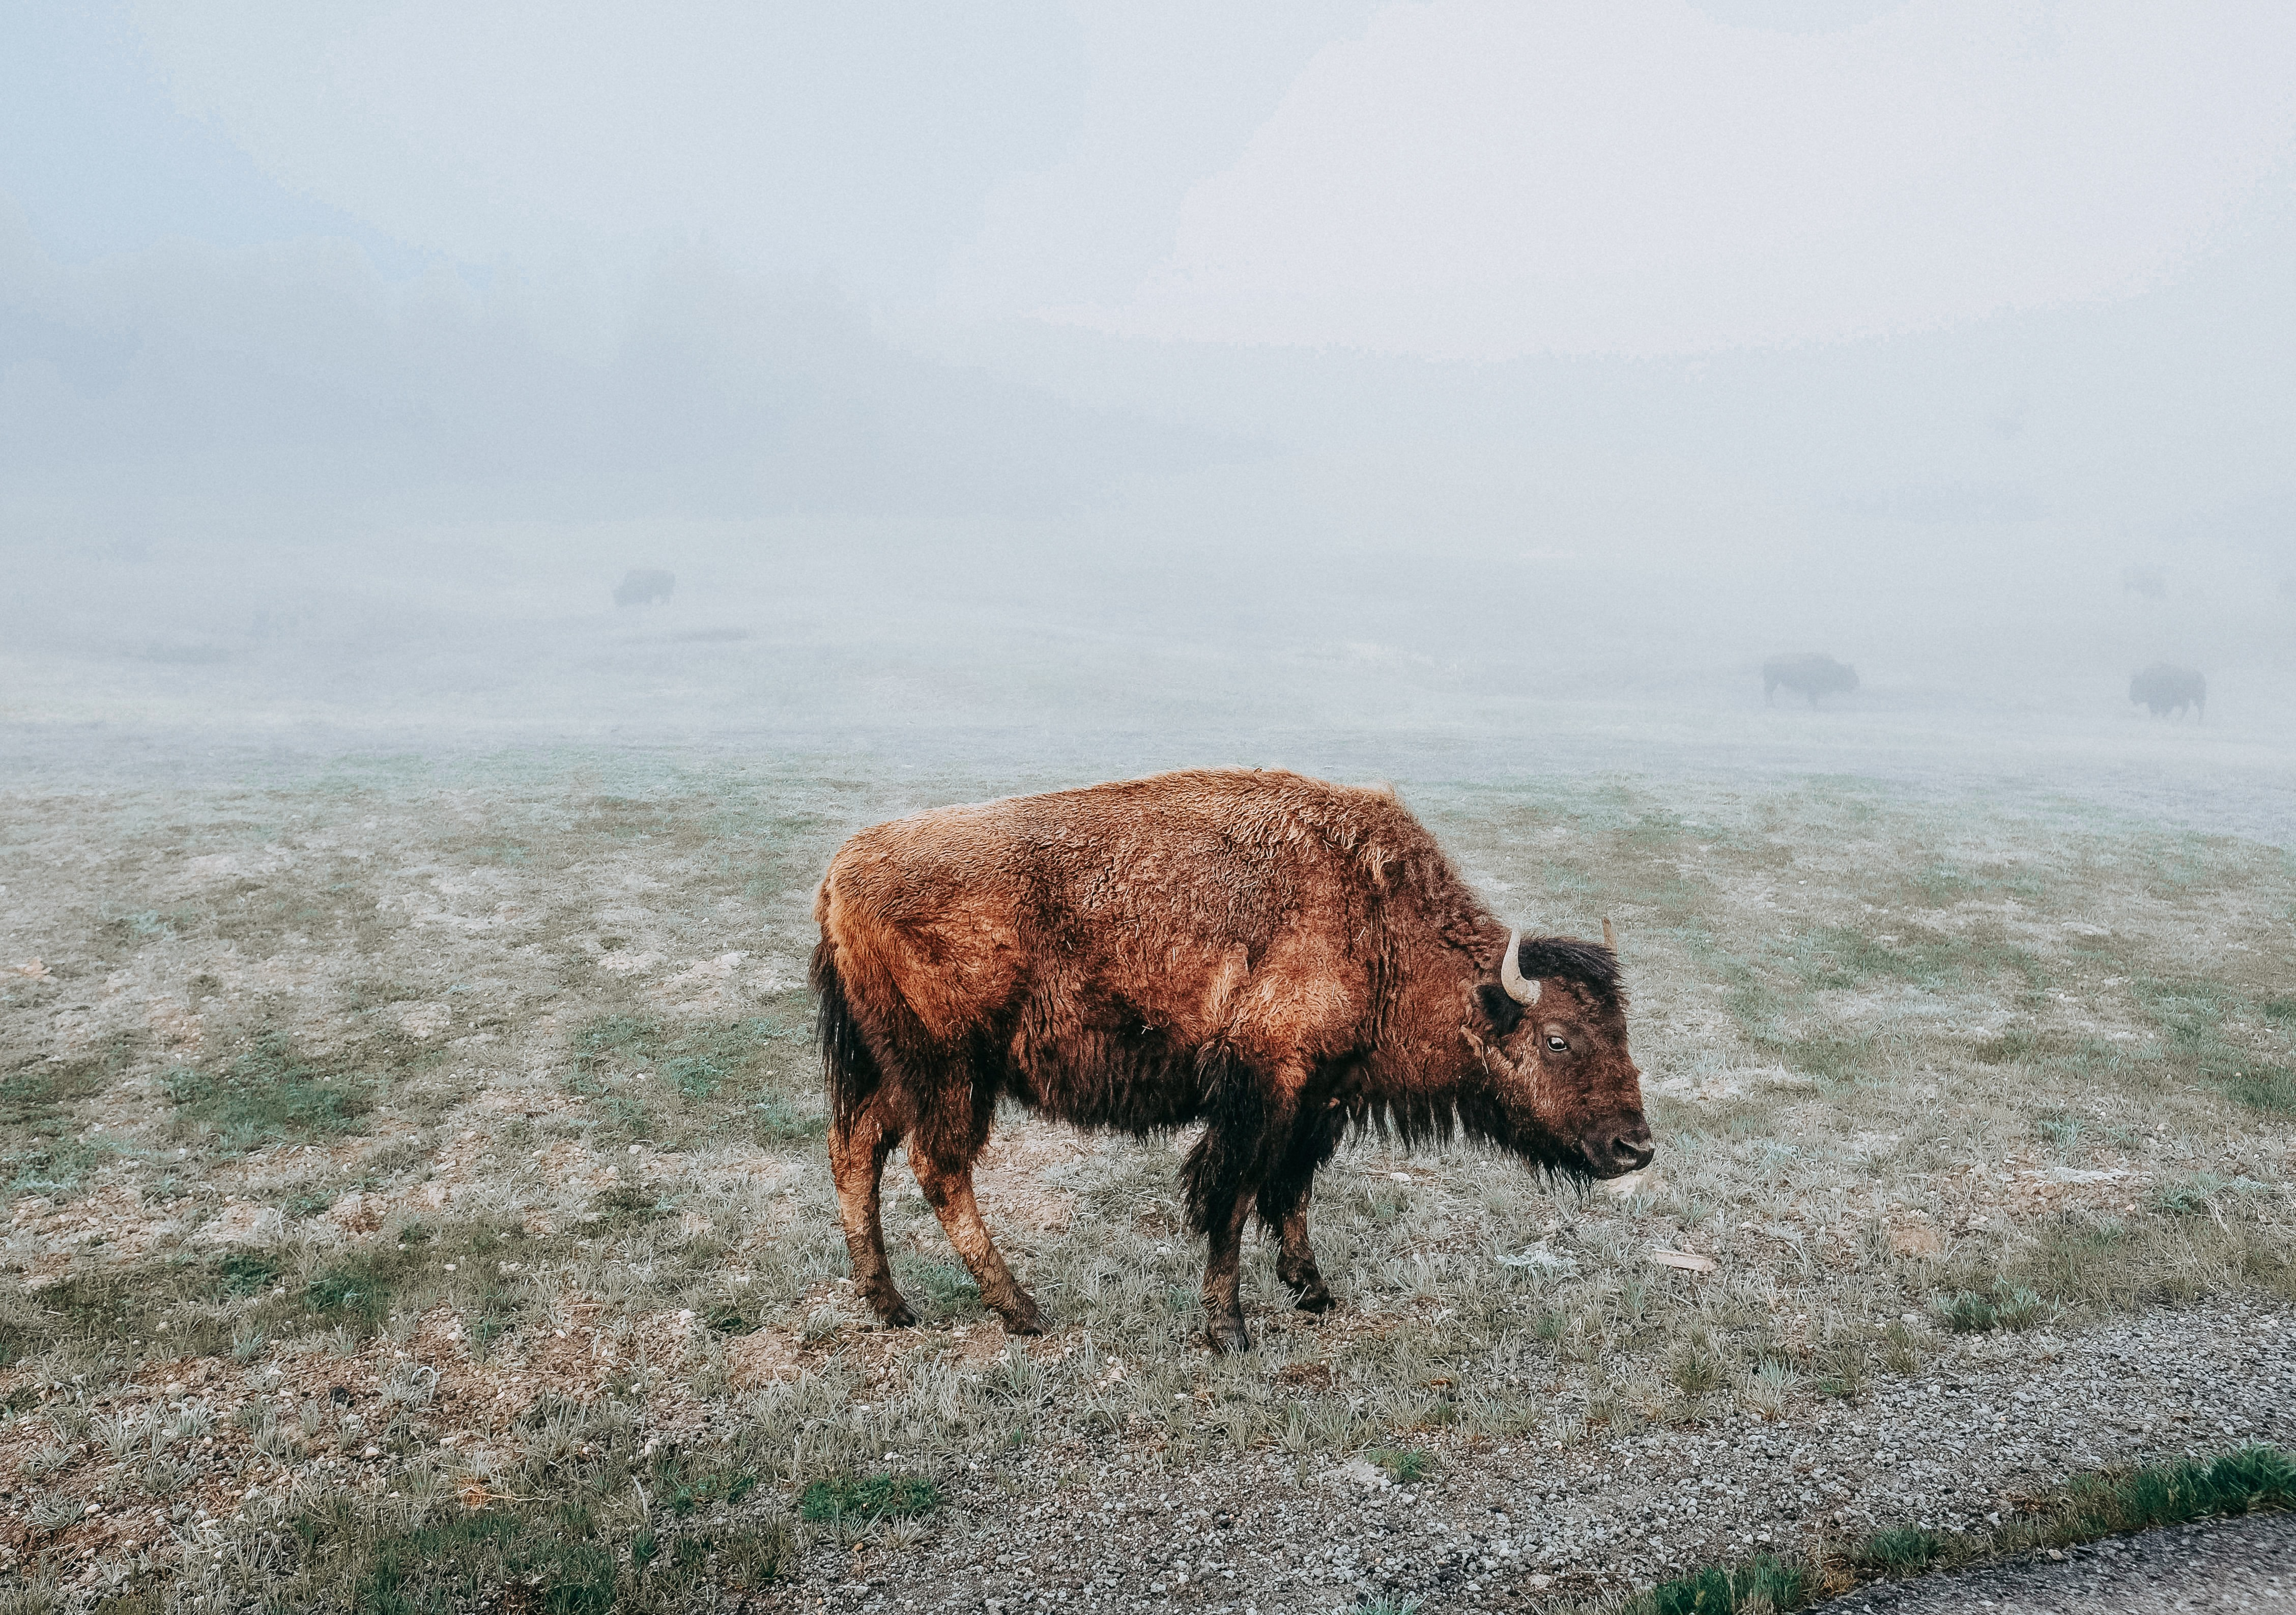 bison at the field